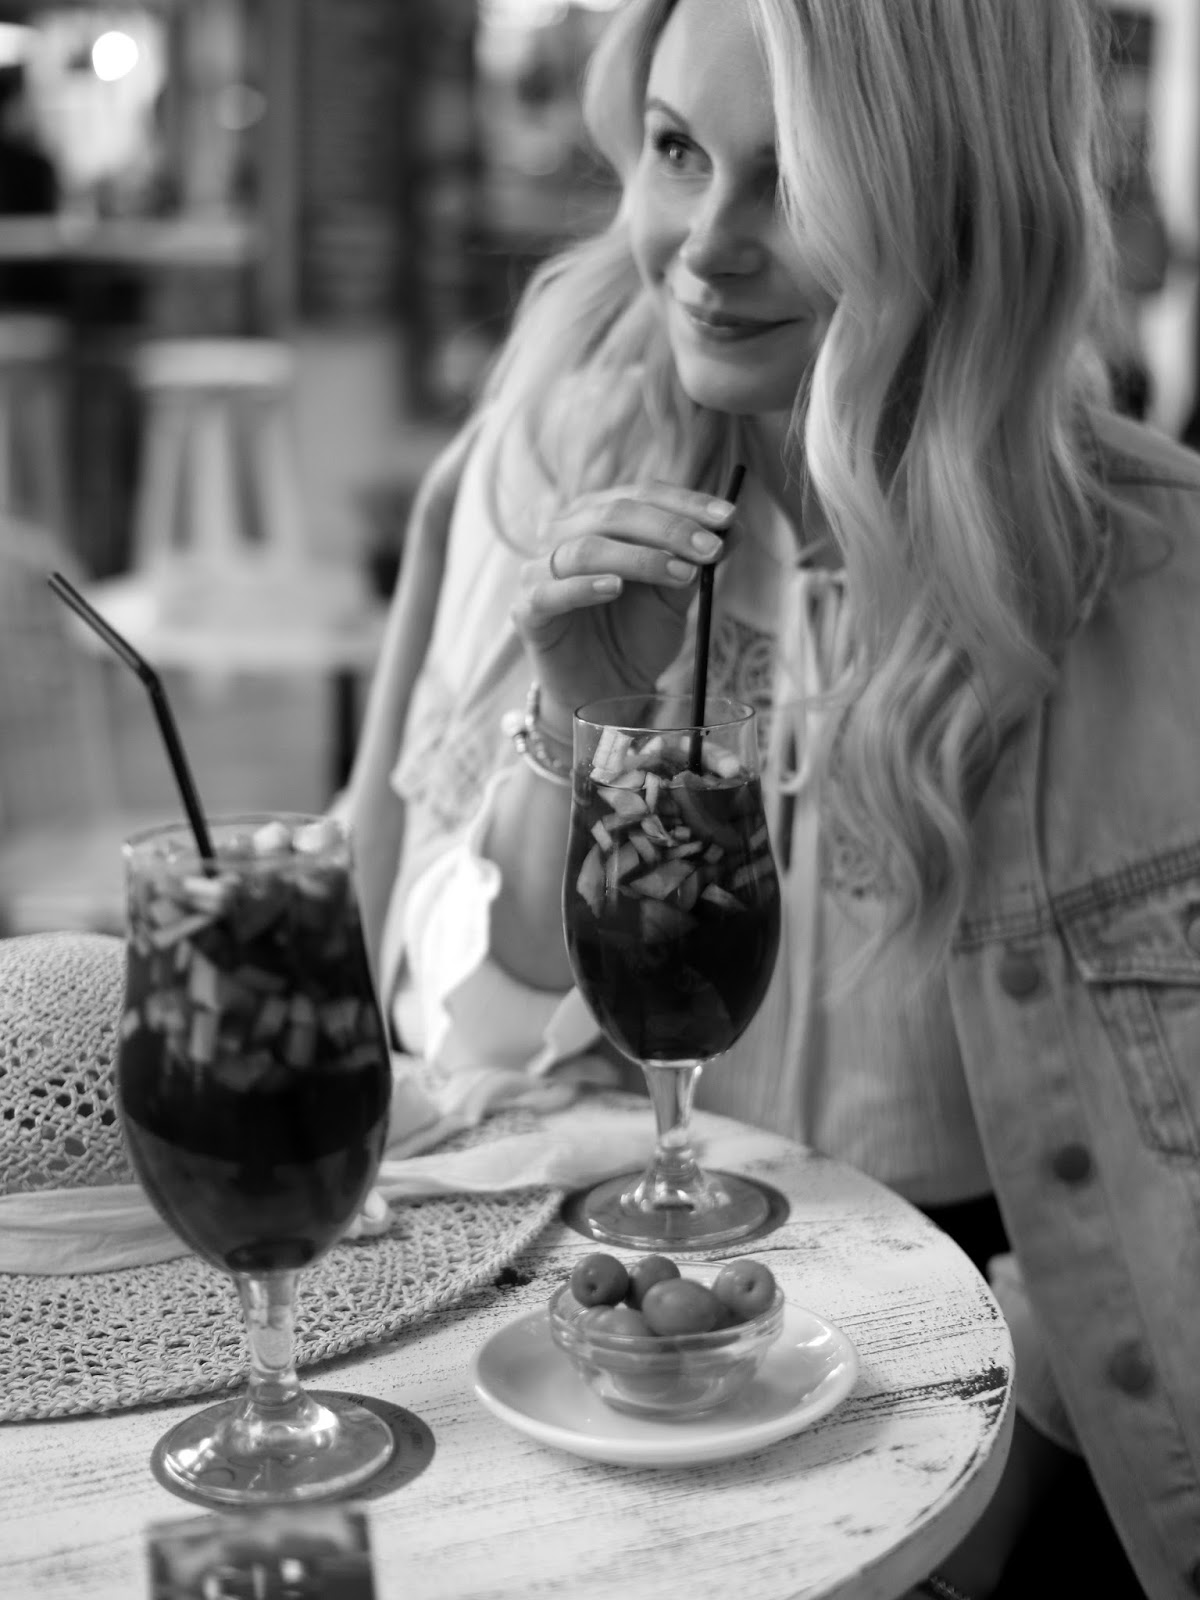 sangria in the city